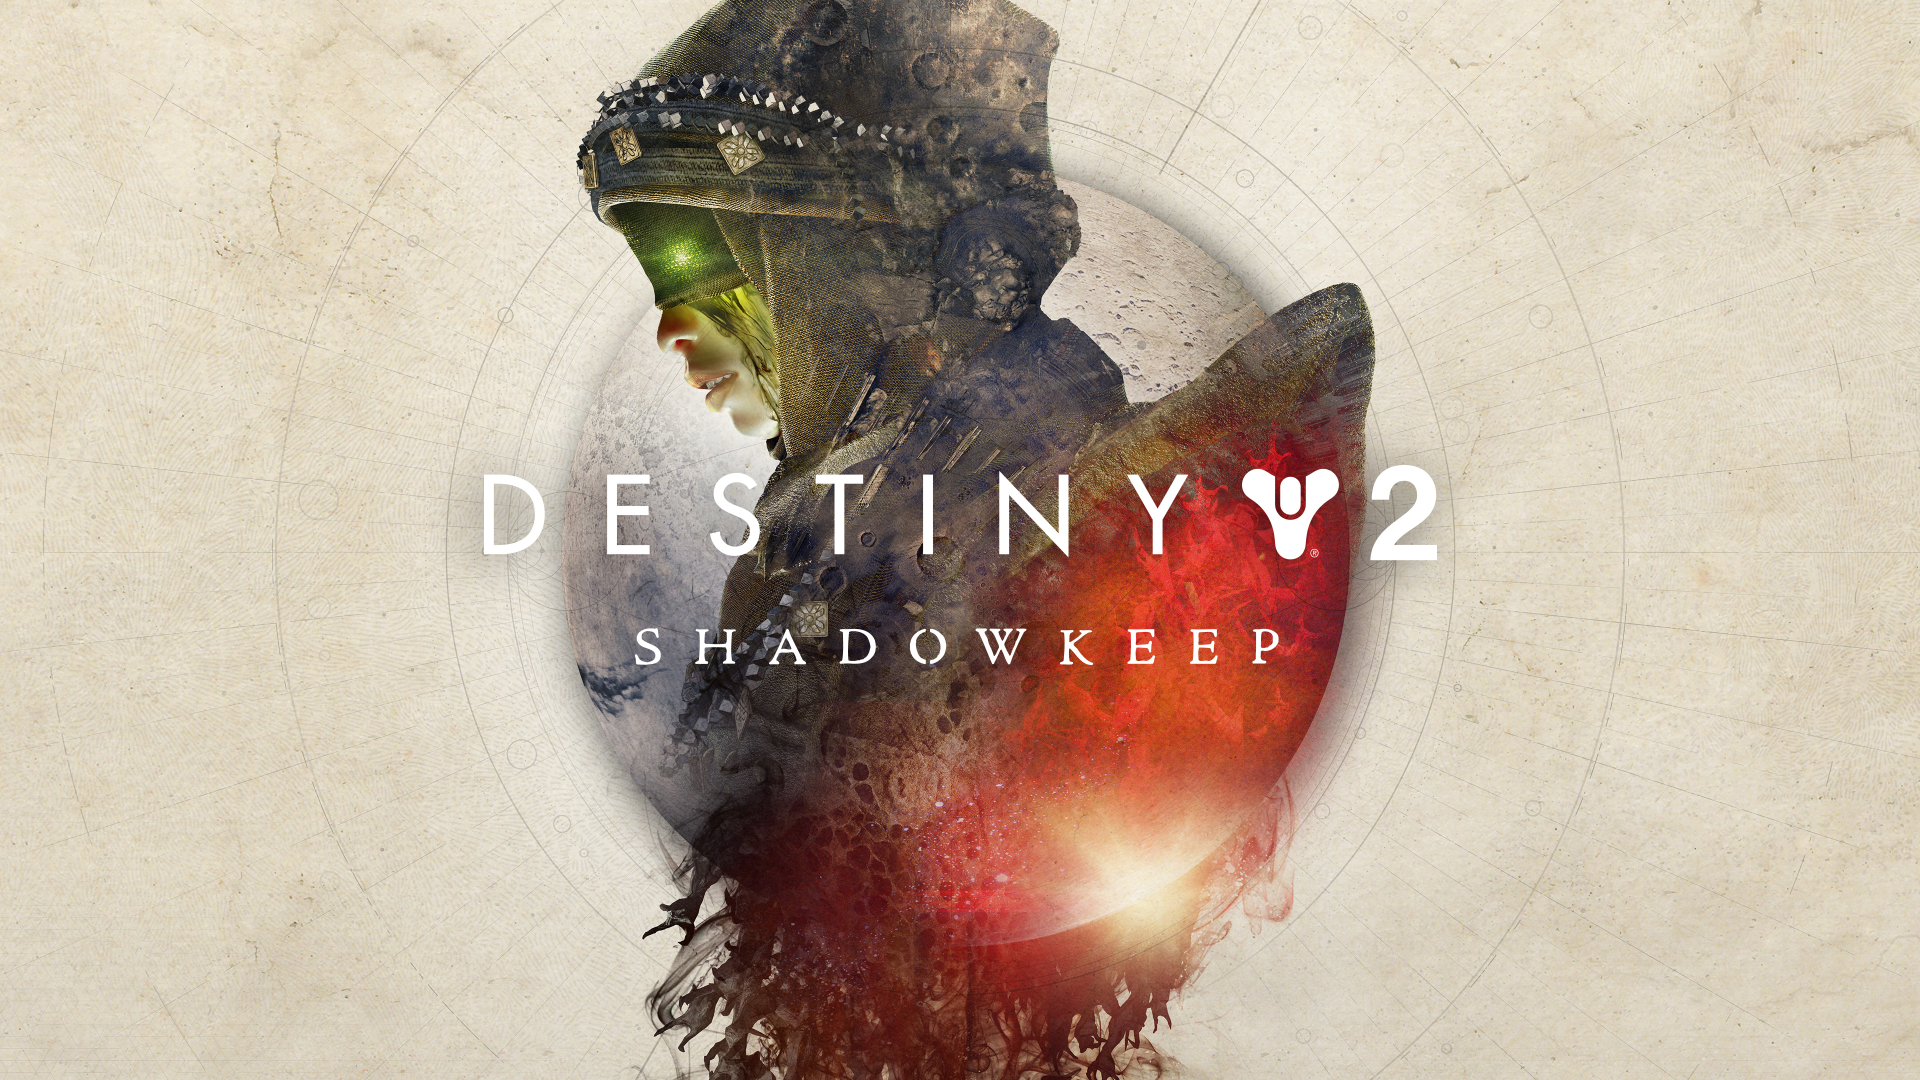 1920x1080 4k Shadowkeep Destiny 2 1080p Laptop Full Hd Wallpaper Hd Games 4k Wallpapers Images Photos And Background